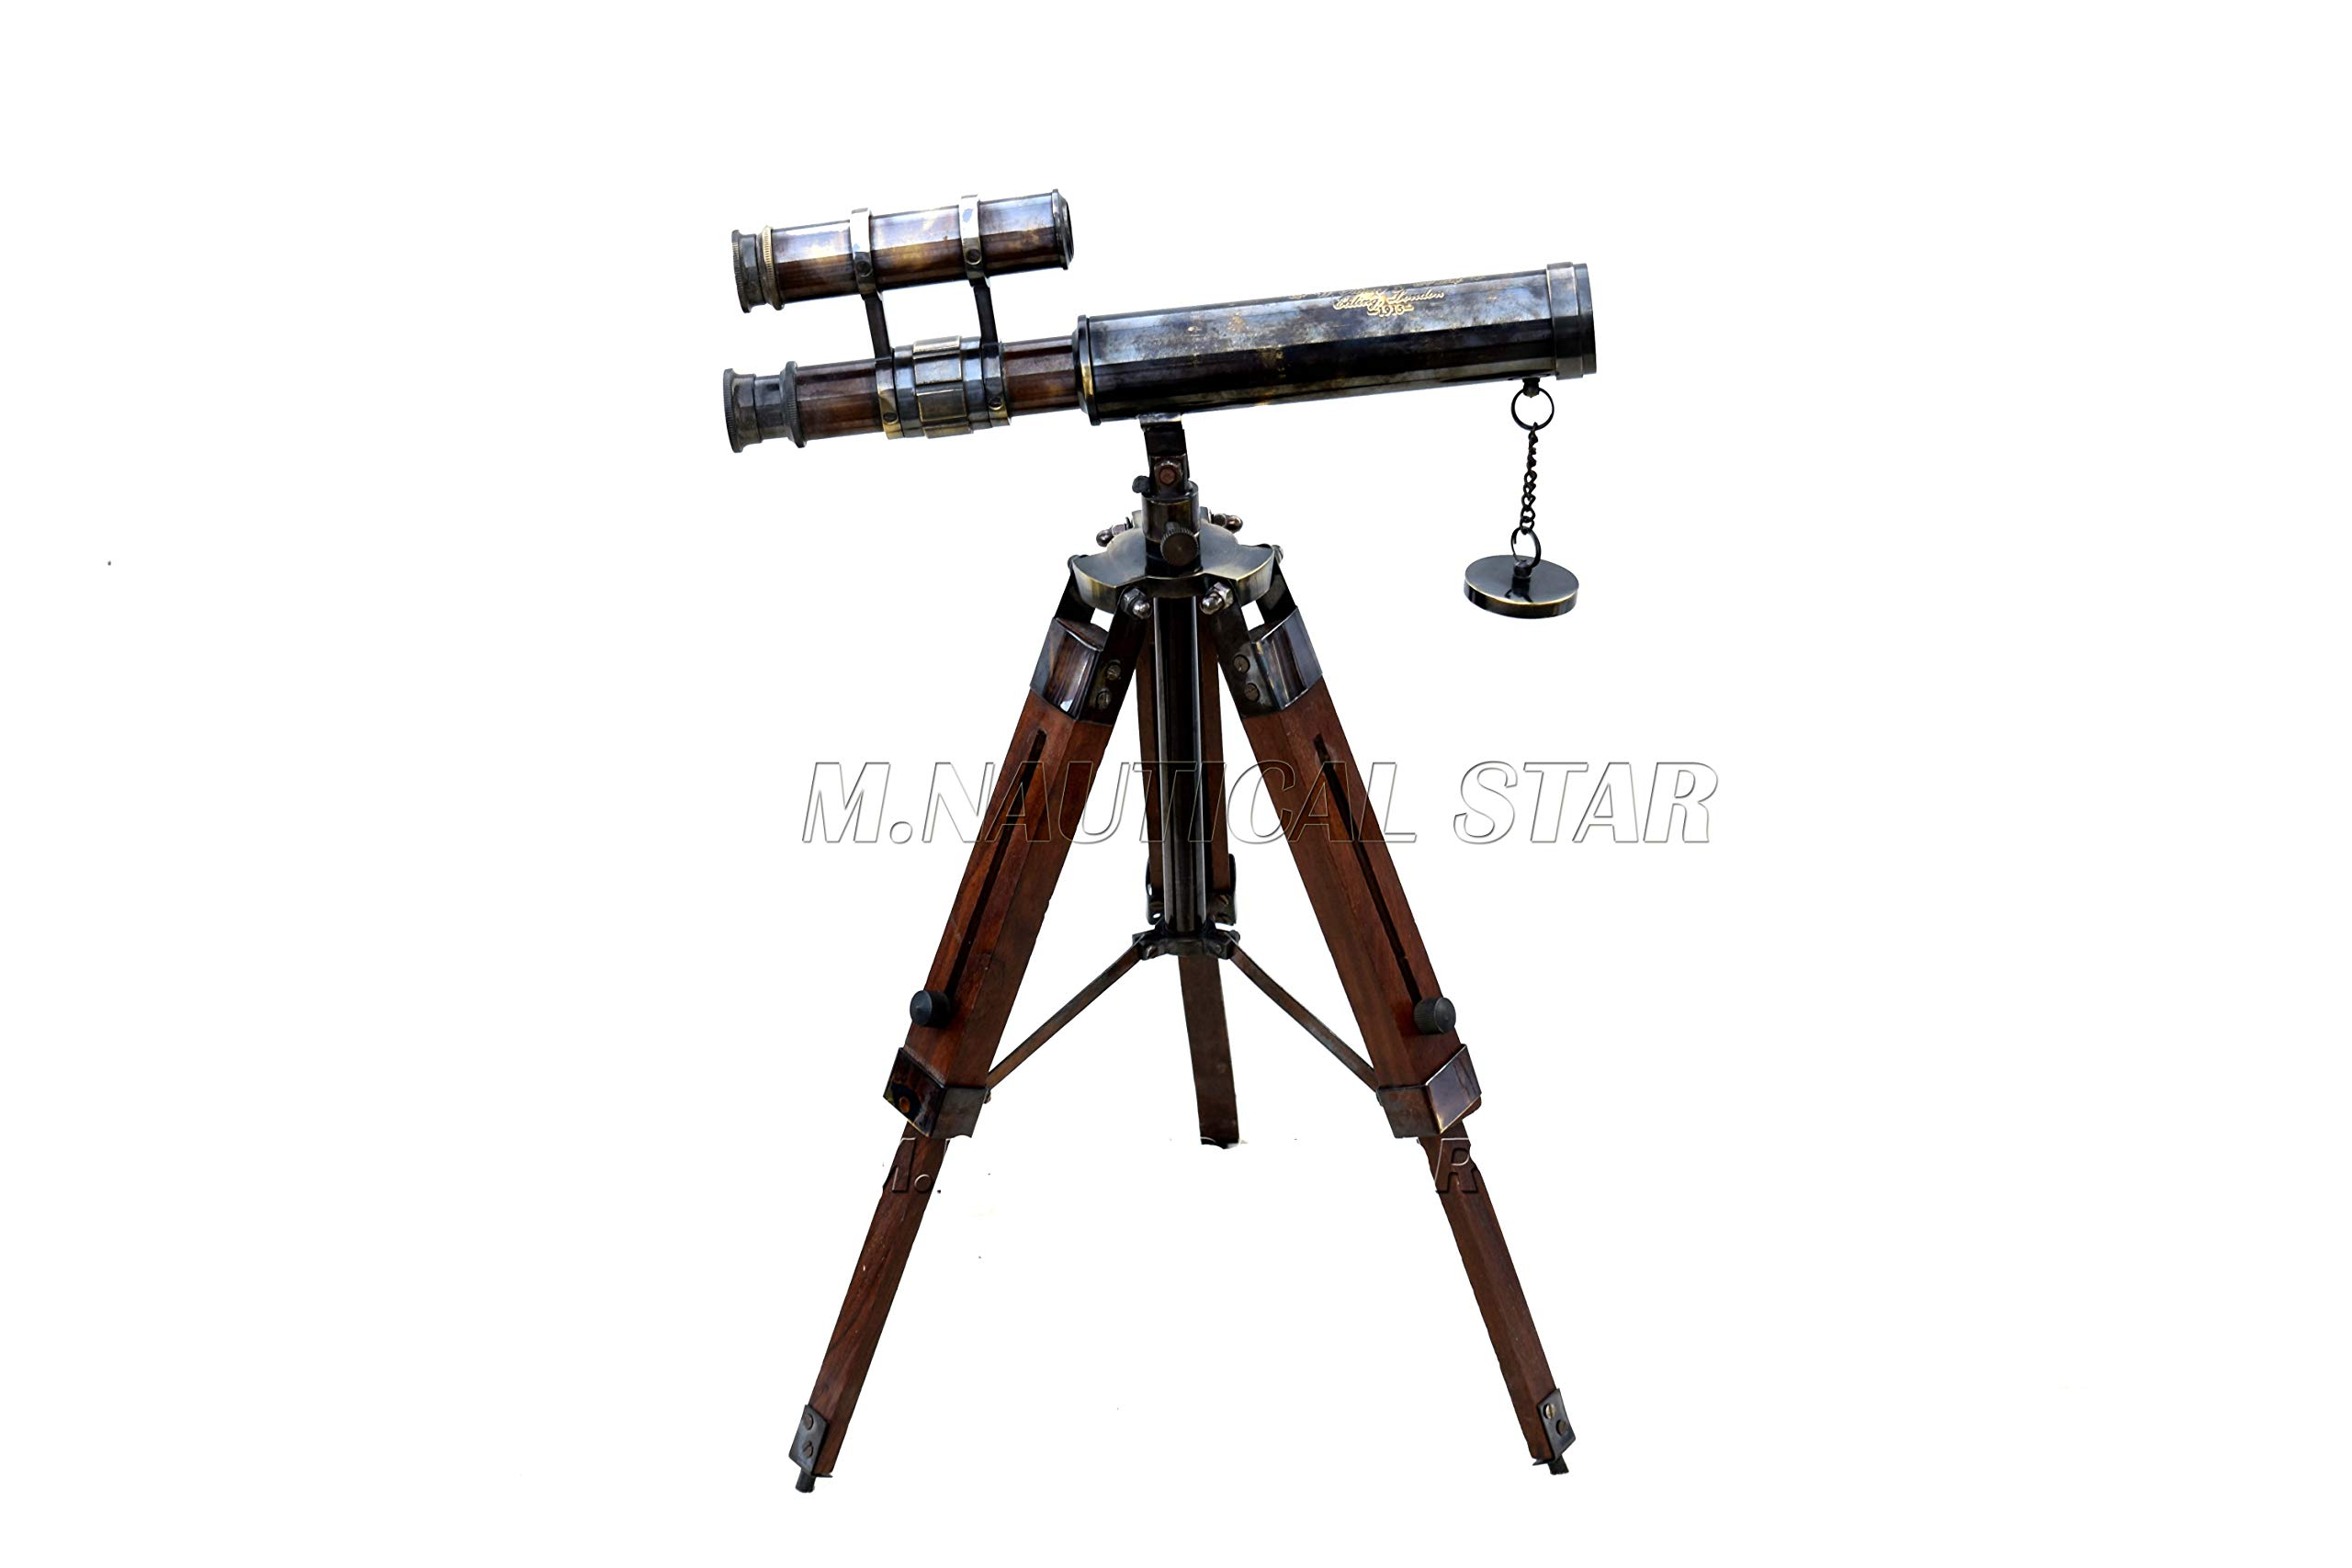 M.Nautical Star Vintage Style Handmade Brass Antique Double Barrel Telescope On Wooden Stand Perfect Table Decorative by M.Nautical Star